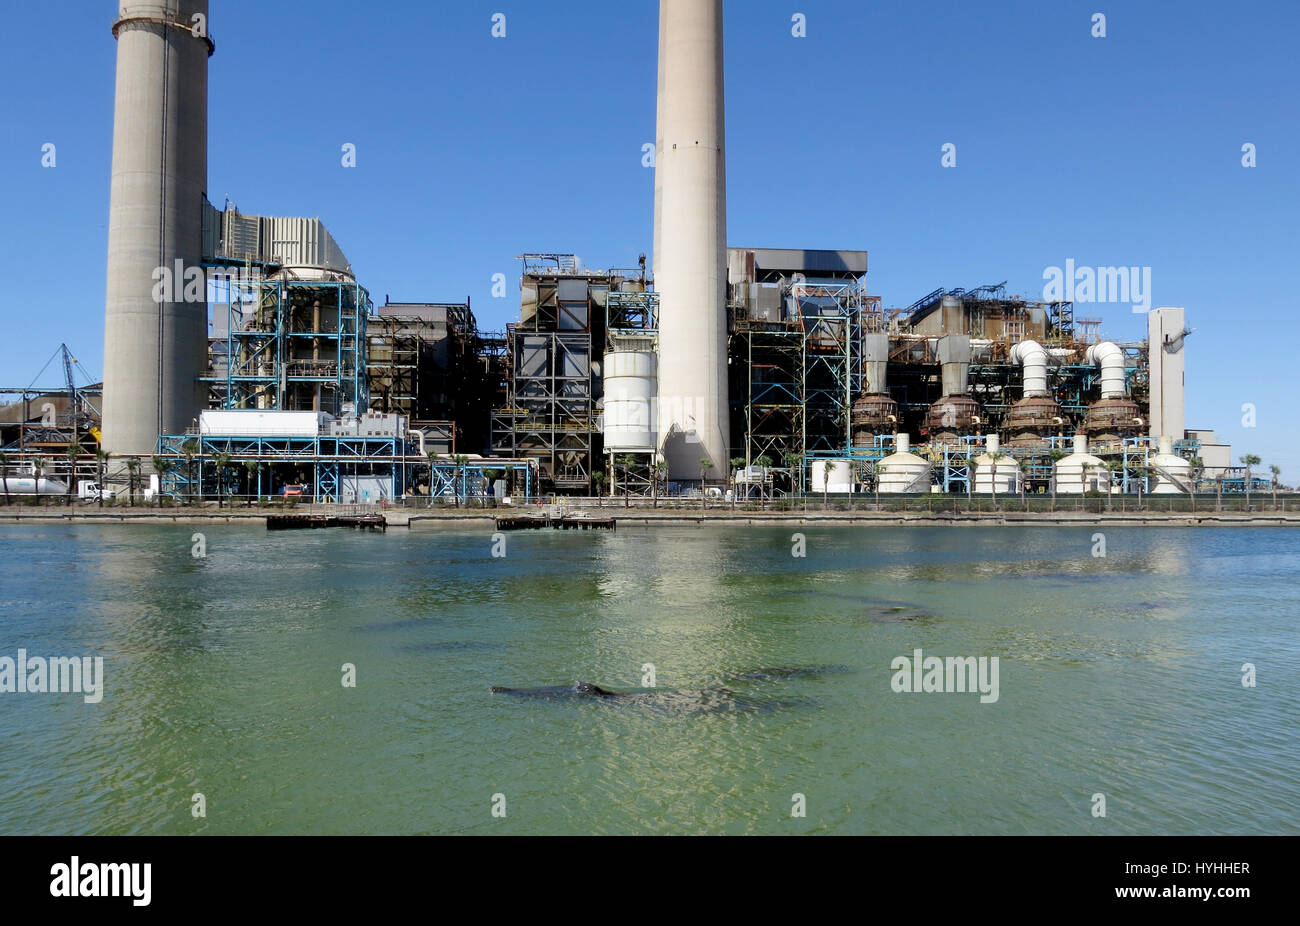 Manatees come up for air in the warm waters at the base of Tampa Electric's coal fired Big Bend Power Station - Stock Image